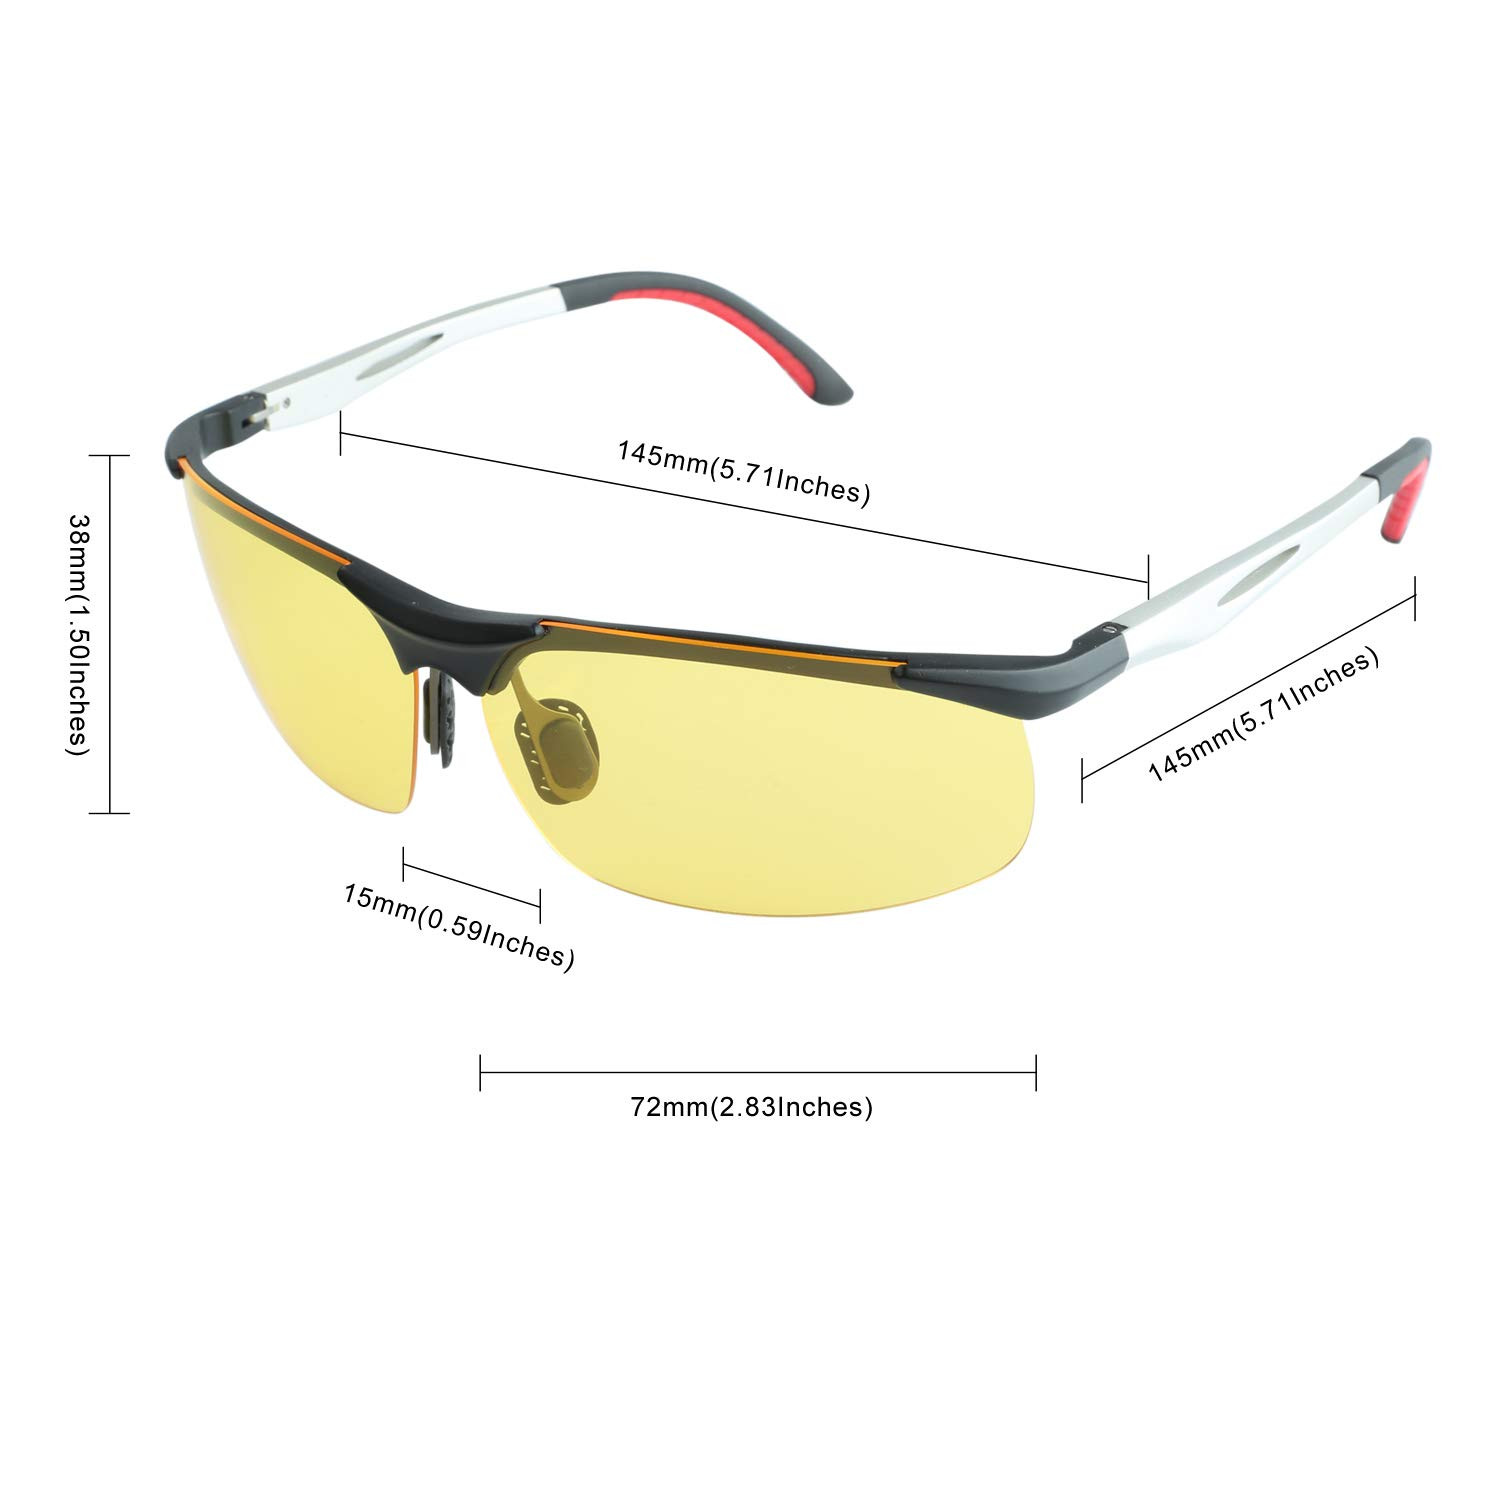 49d3fd9b640d DUCO Night Driving Glasses with Polarized Yellow Lens for Cutting Headlight Glare  2181 Yellow Sports   Fitness 2181YELLOW